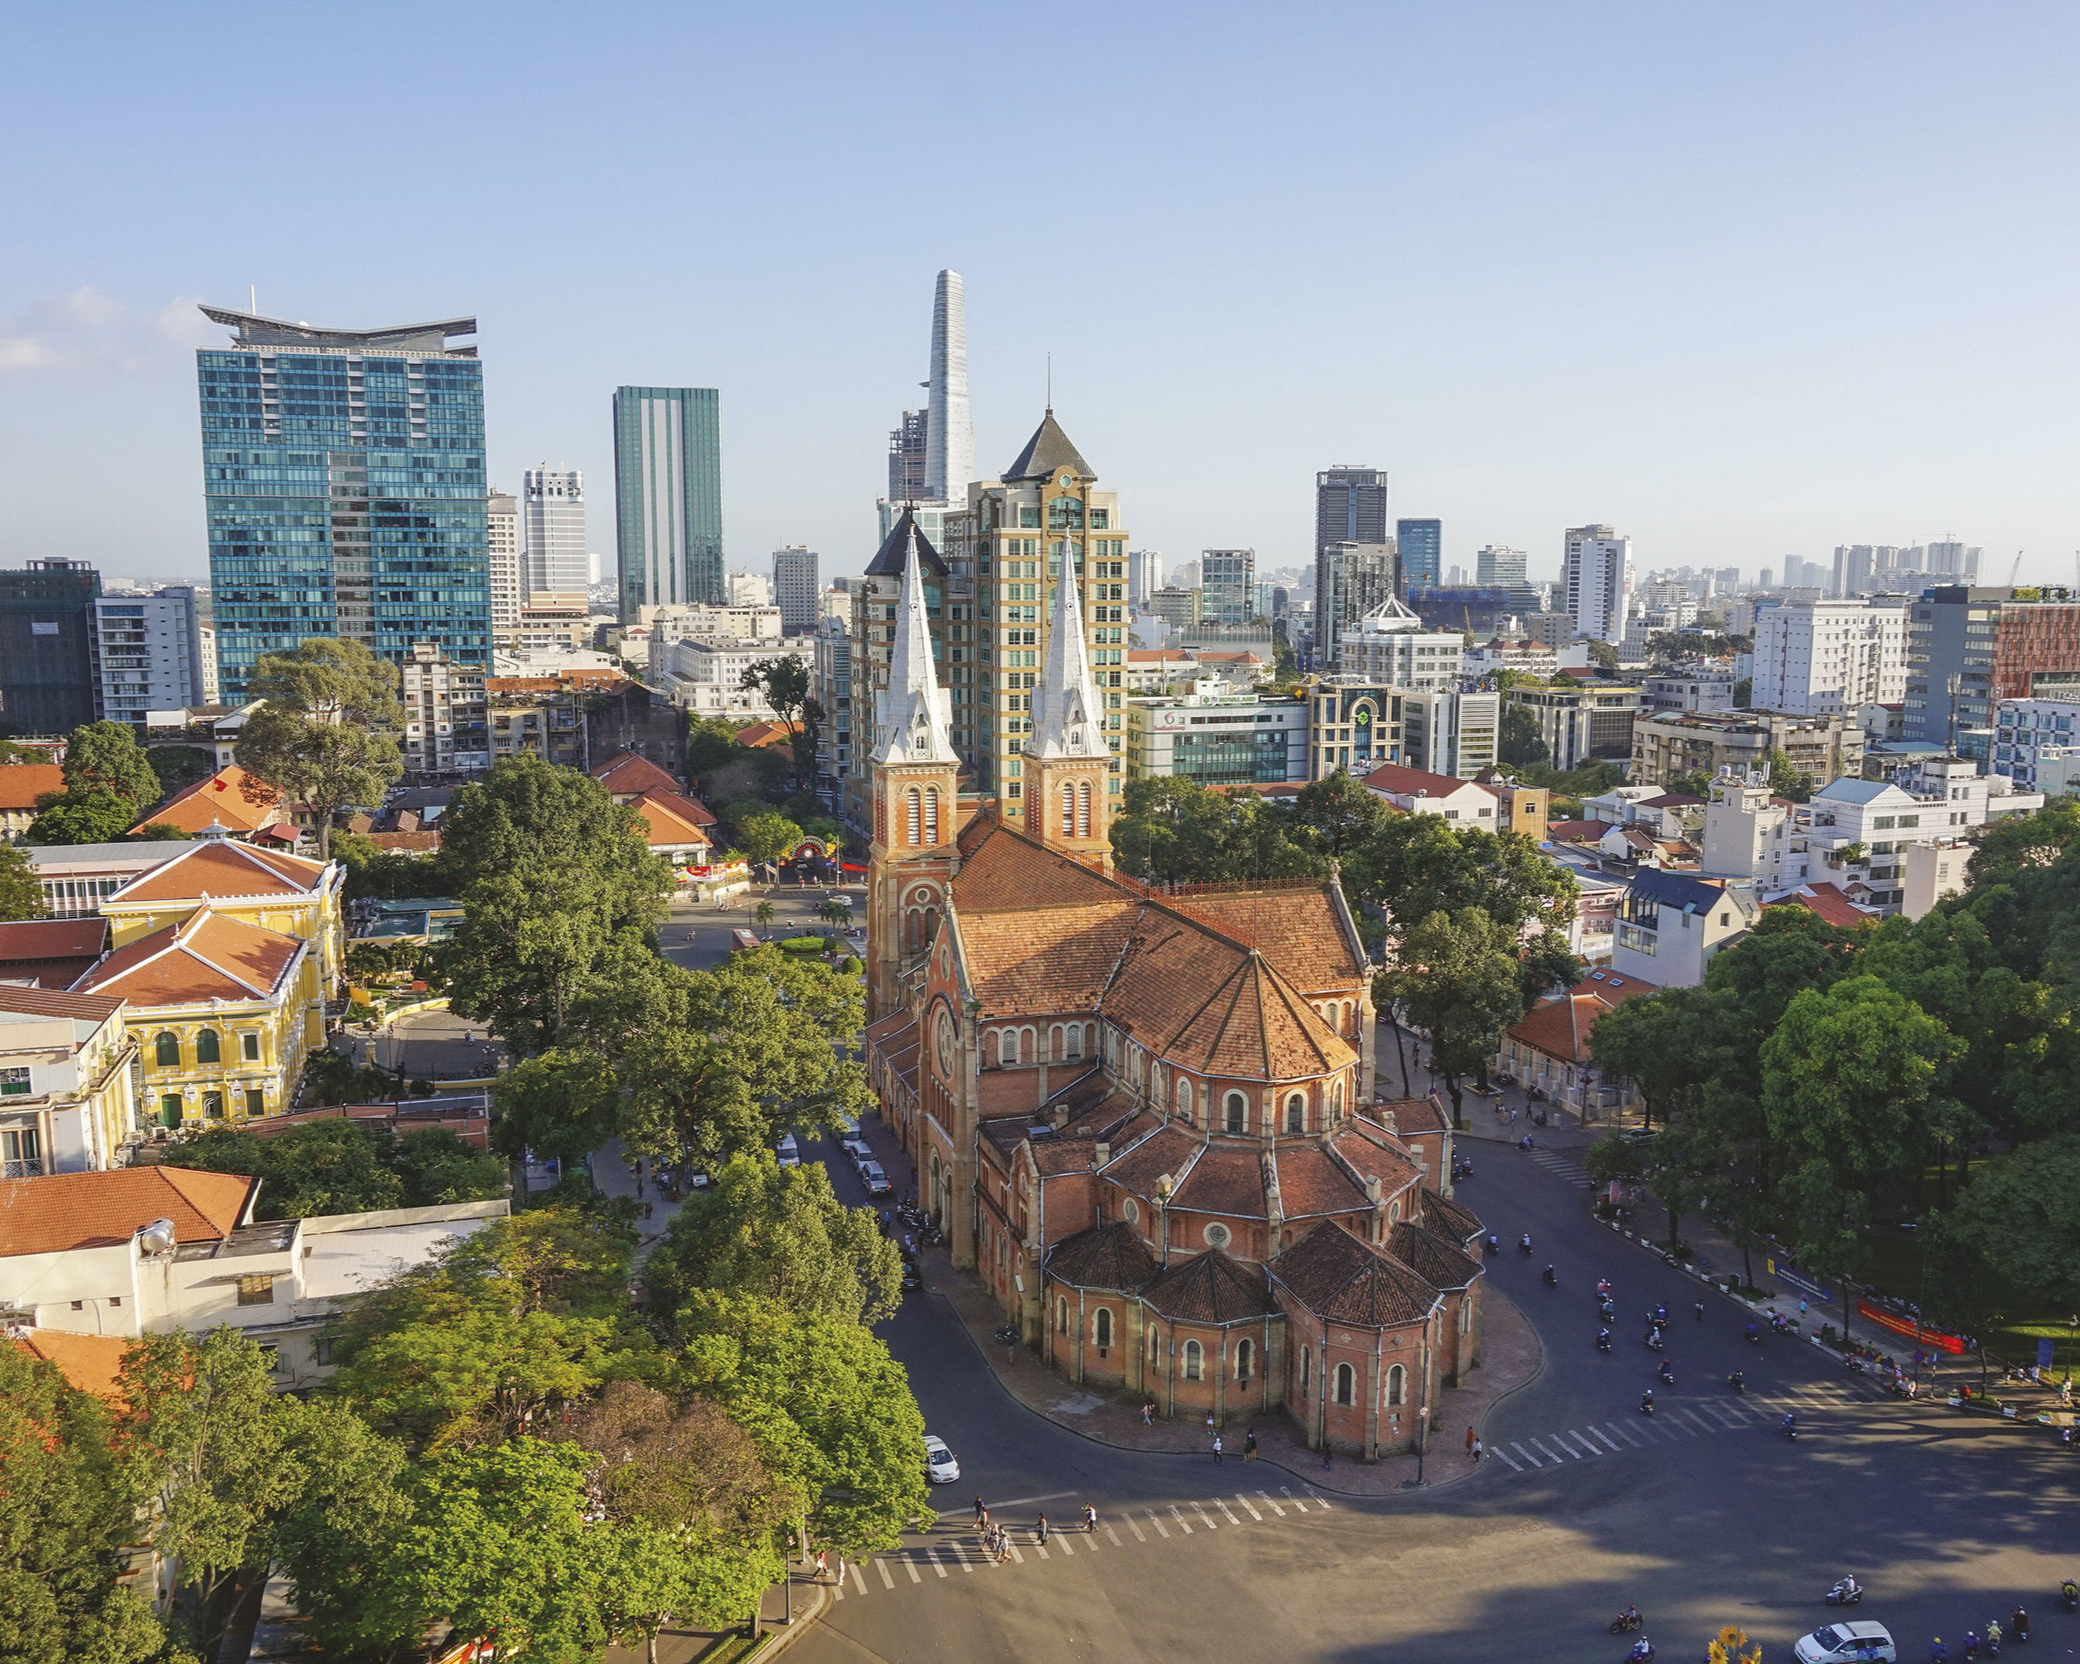 HO CHI MINH CITY - From $ 549 per personEnjoy a two-night stay at the centrally located Park Hyatt Saigon. Guided excursions visit the beautiful Notre Dame Cathedral, City Hall and Post Office constructed during the French colonial period as well as Reunification Palace and the famous Ben Thanh Market. Guests may also select to do a cooking class with lunch or an evening outing to the Observation Deck at the Bitexco Tower combined with an exquisite French-Vietnamese themed dinner.Breakfast, airport transfer, porterage and all applicable taxes are included. Prices and hotel are subject to change.